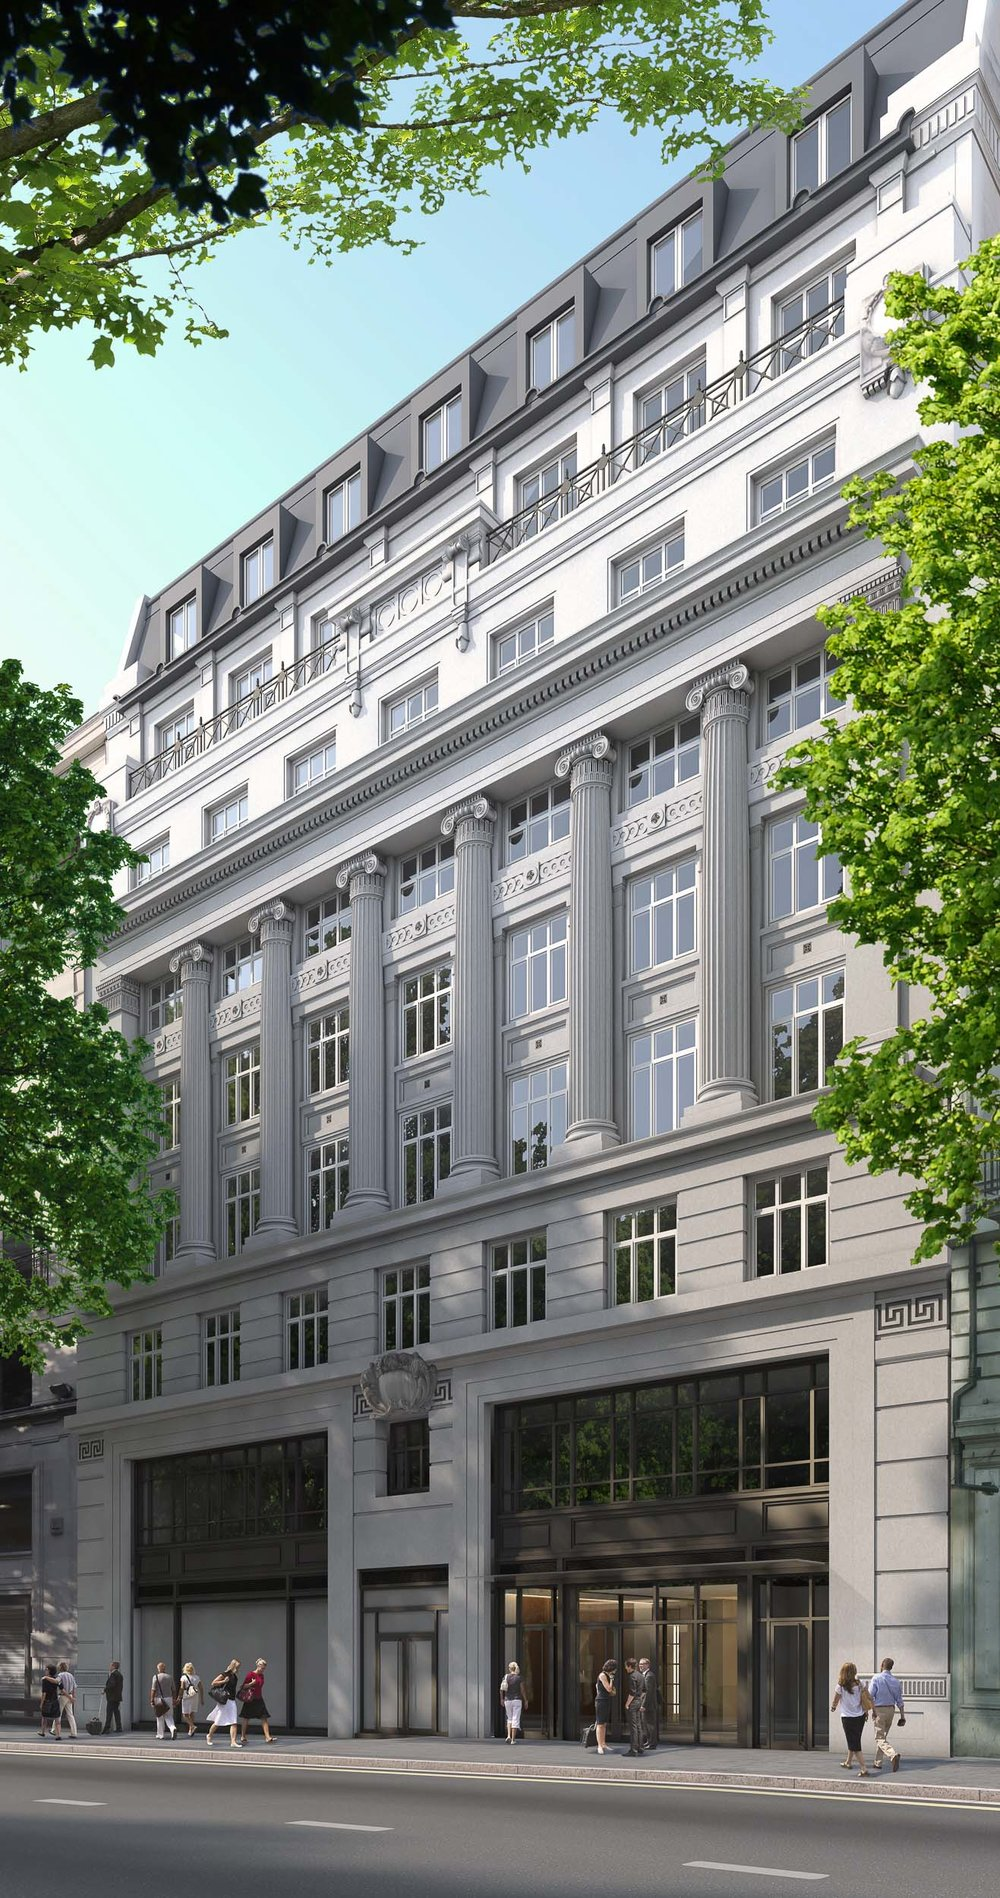 Located along the Kingsway in London. Princes House is a residential development in the heart of central London. The building has been refurbished to contain luxurious apartments with a high spec fit out.